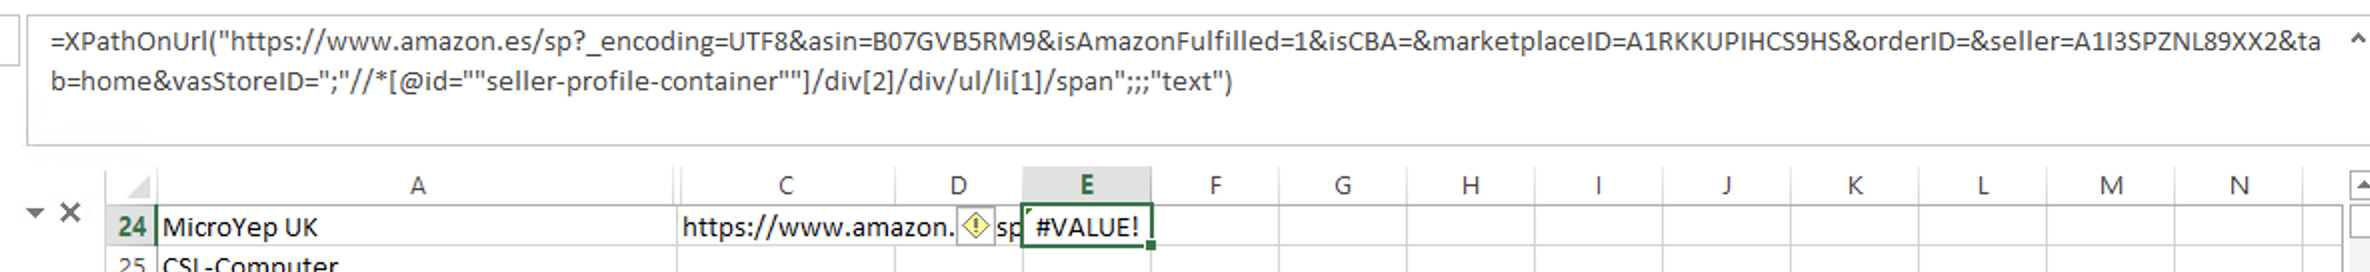 Only #VALUE with Xpath and Amazon - Support - SeoTools for Excel